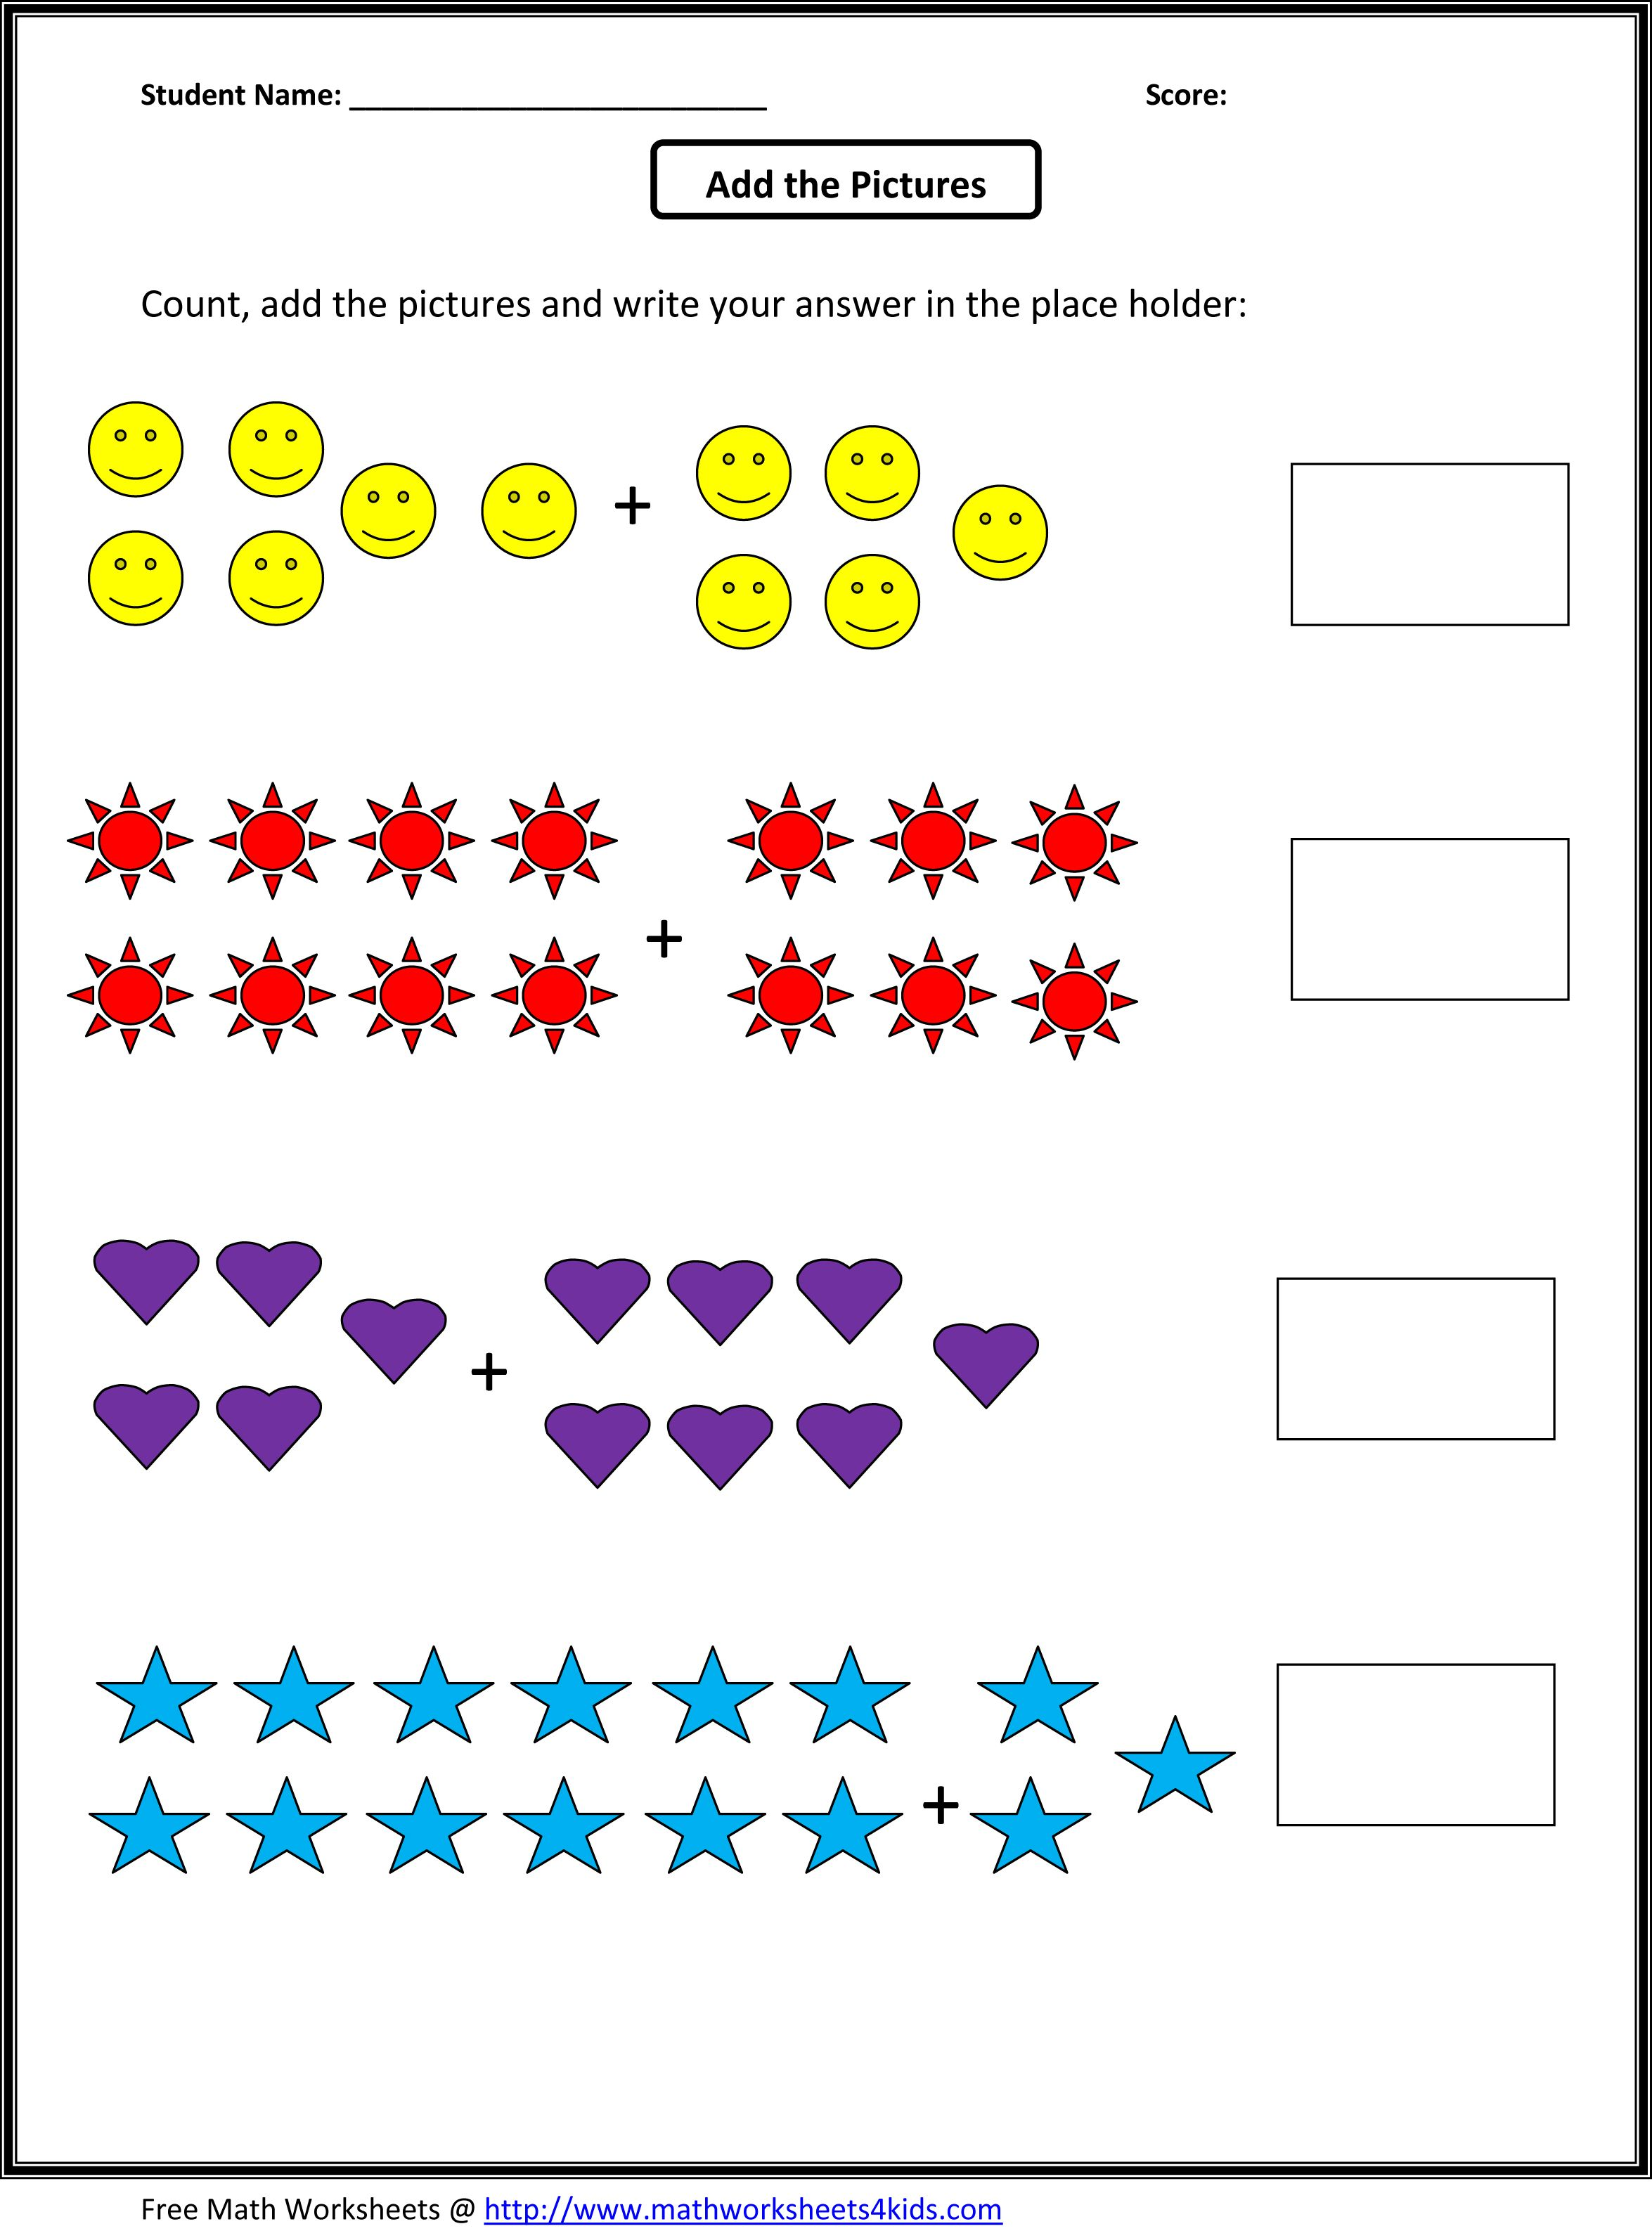 grade 1 addition math worksheets – Math Tutoring Worksheets